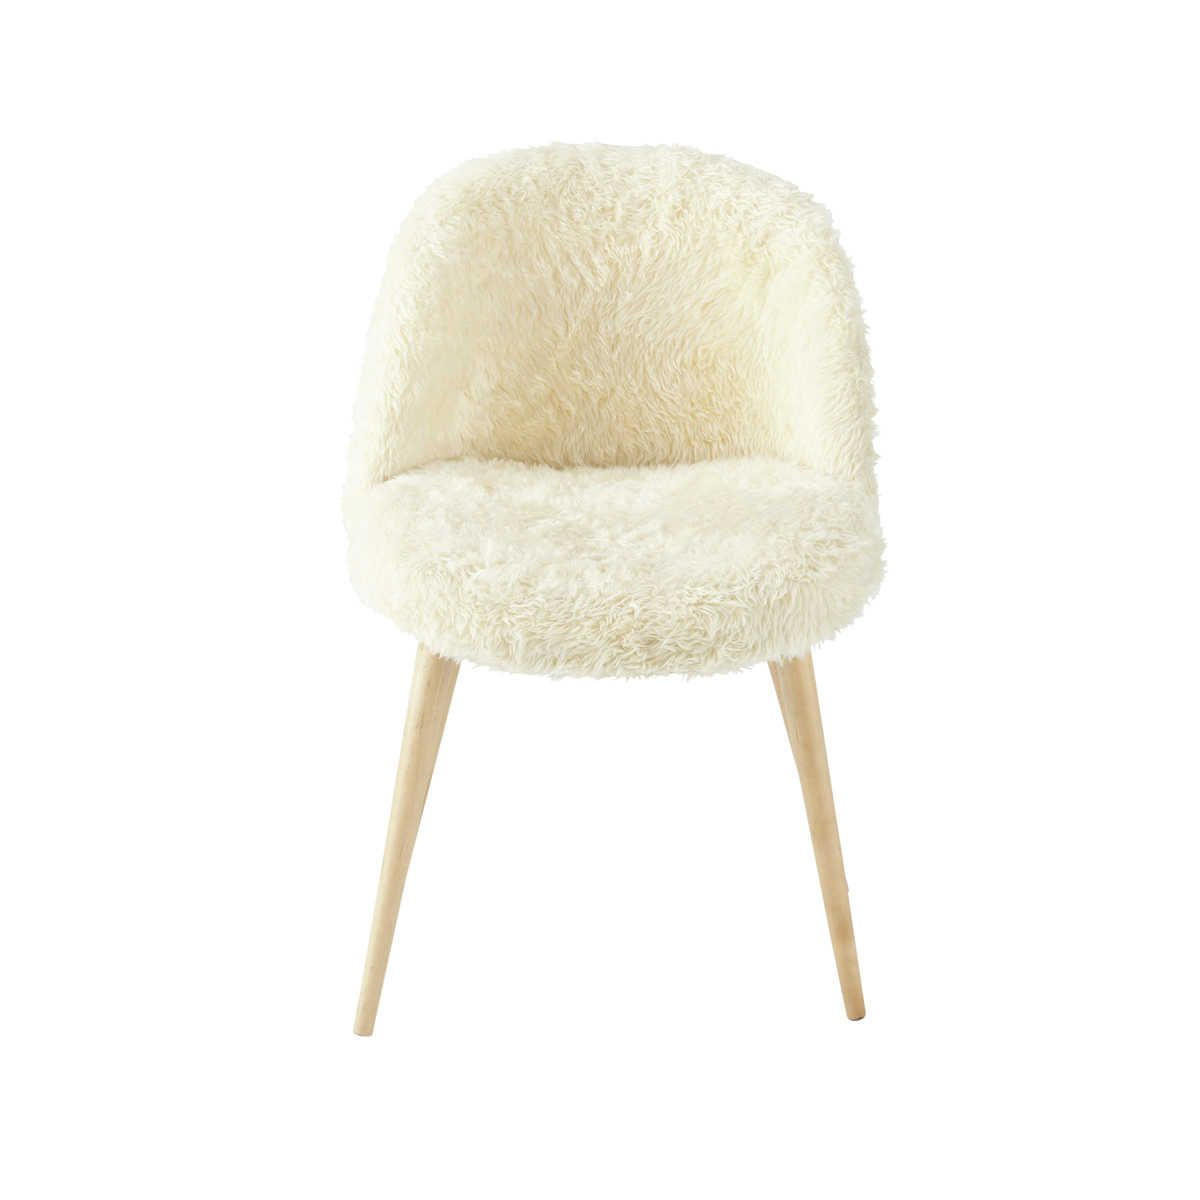 Ivory Faux Fur And Birch Vintage Chair Maisons Du Monde Childrens Room Decor Vintage Chairs White Metal Chairs